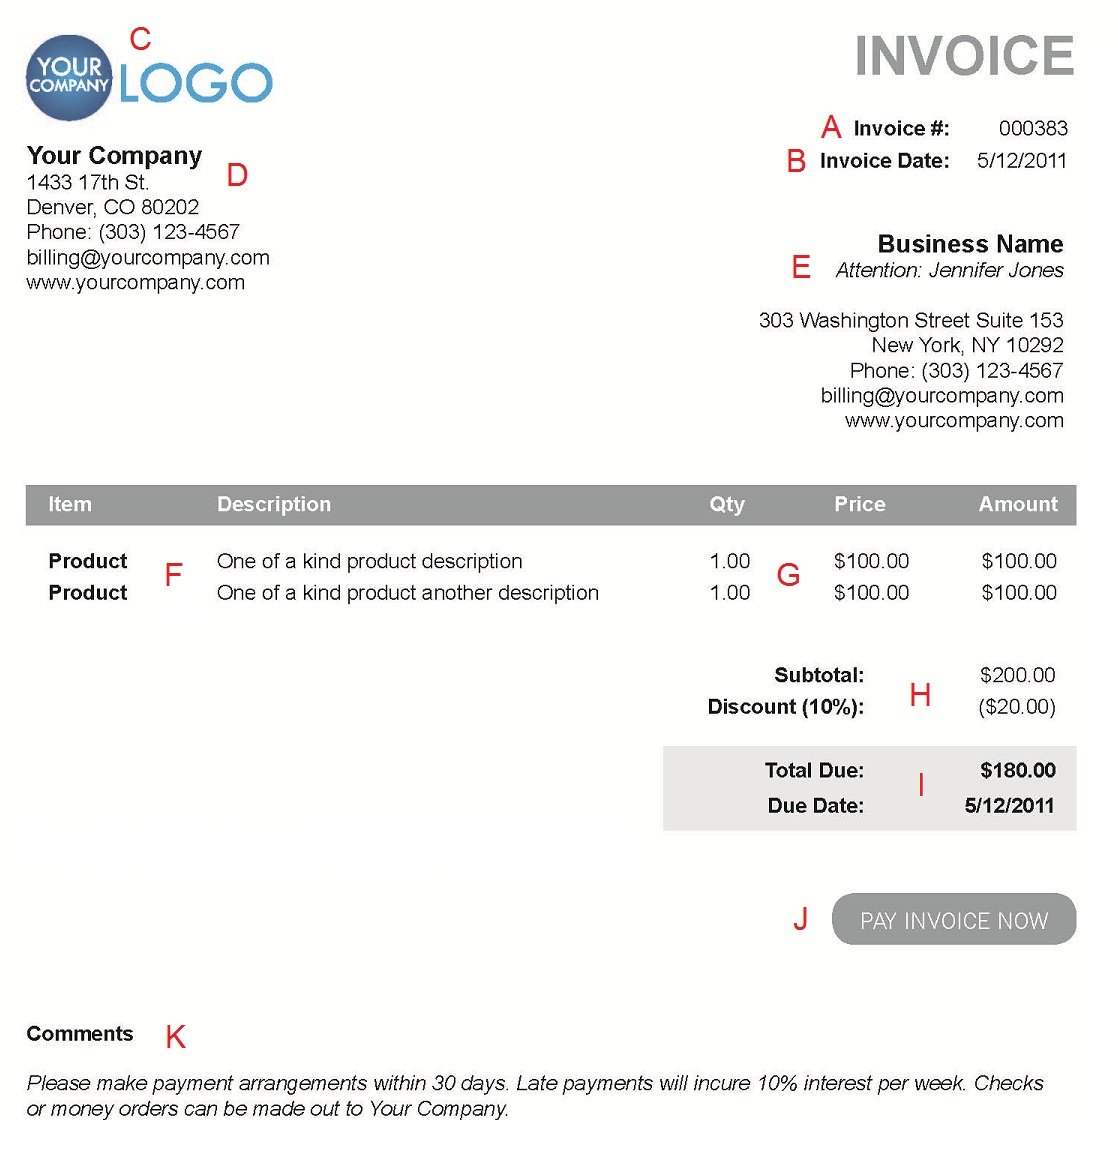 Musclebuildingtipsus  Winning The  Different Sections Of An Electronic Payment Invoice With Goodlooking A  With Comely How To Write A Tax Invoice Also Fedex Comercial Invoice In Addition Ms Word Invoice Template Free And Hsbc Invoice Factoring As Well As Receipt Invoice Template Free Additionally Free Software For Invoice For Business From Paysimplecom With Musclebuildingtipsus  Goodlooking The  Different Sections Of An Electronic Payment Invoice With Comely A  And Winning How To Write A Tax Invoice Also Fedex Comercial Invoice In Addition Ms Word Invoice Template Free From Paysimplecom